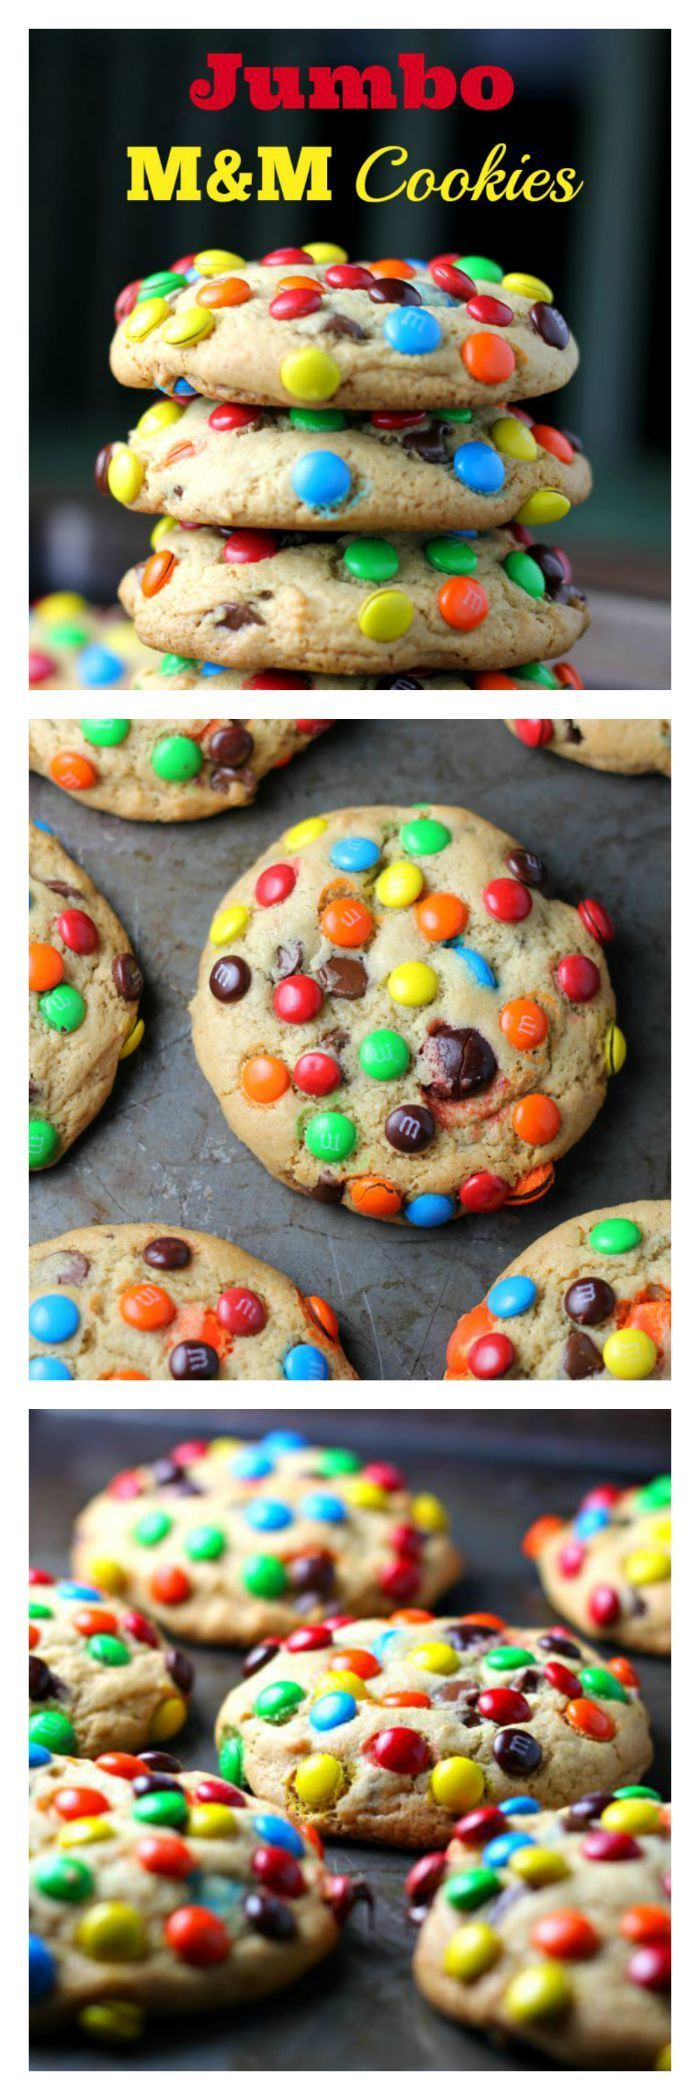 JUMBO 'Soft Batch' M&M Cookies - JUMBO 'Soft Batch' M&M Cookies - These rainbow JUMBO cookies have 2 secret ingredients! Pudding and butter extract. So you get, soft, thick, fluffy and buttery cookies loaded with M&Ms and chocolate chips. I think I can (birthday brownies graham crackers)